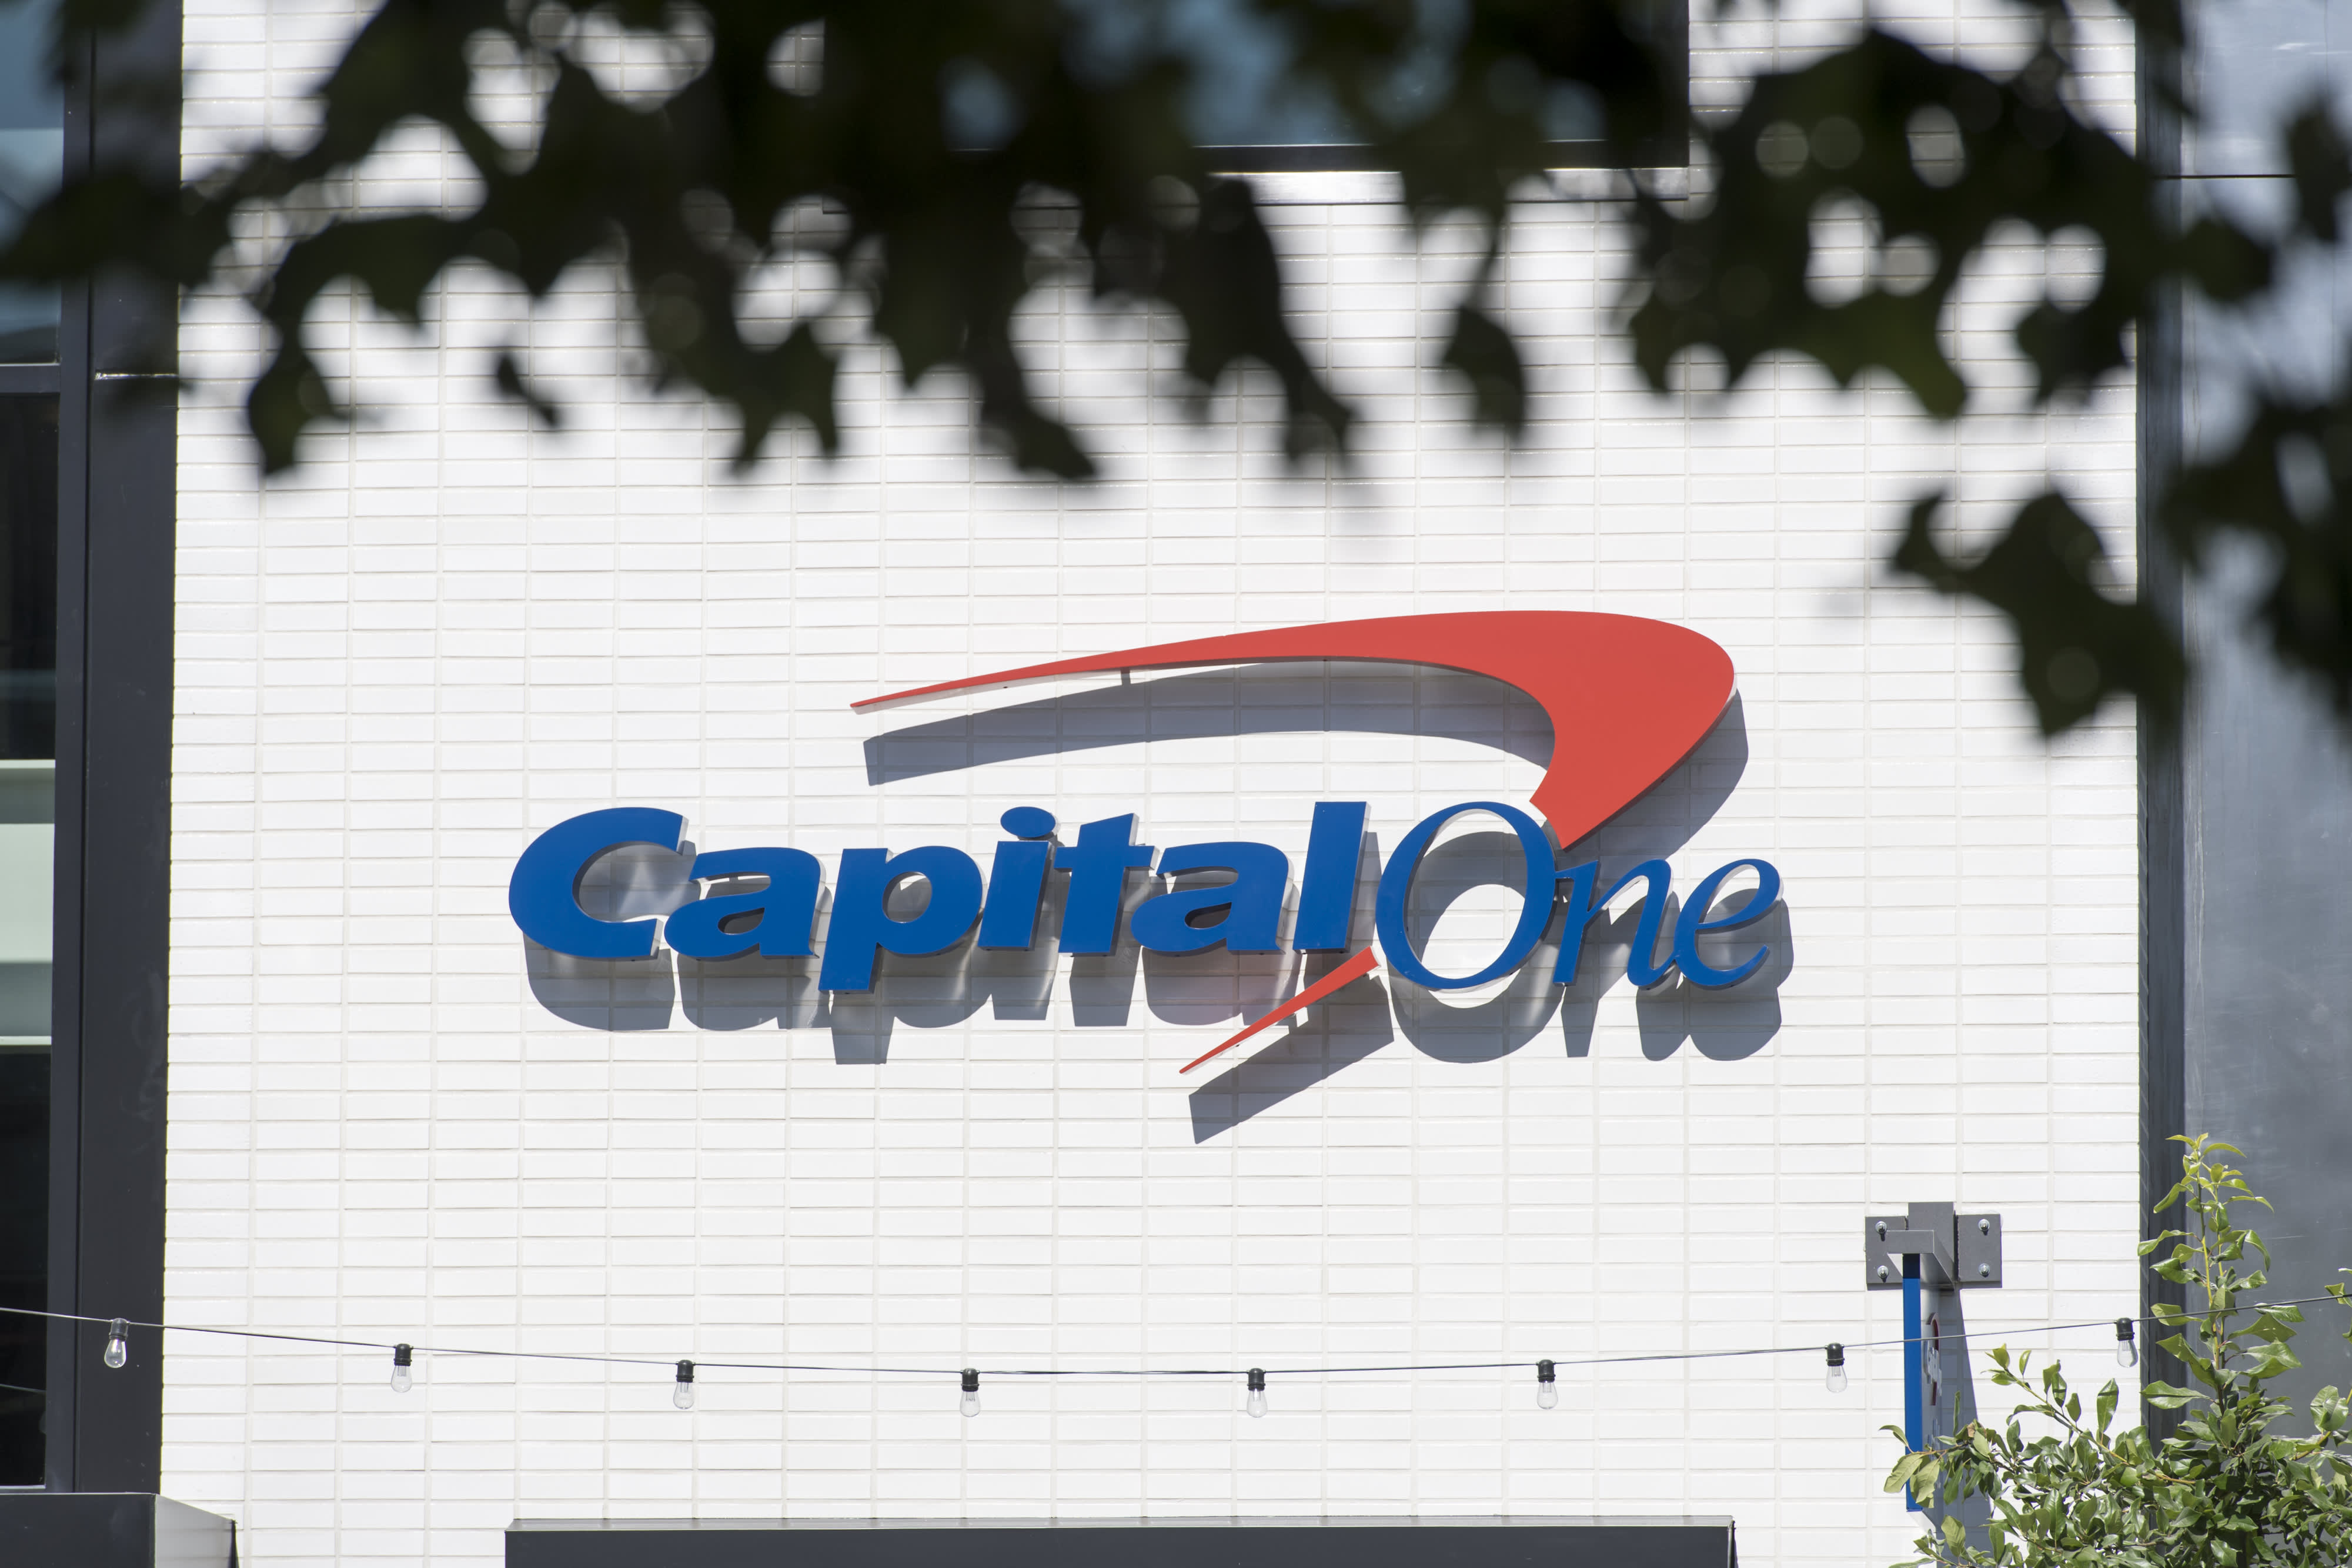 5 things you should do immediately if you suspect you were affected by the Capital One data breach